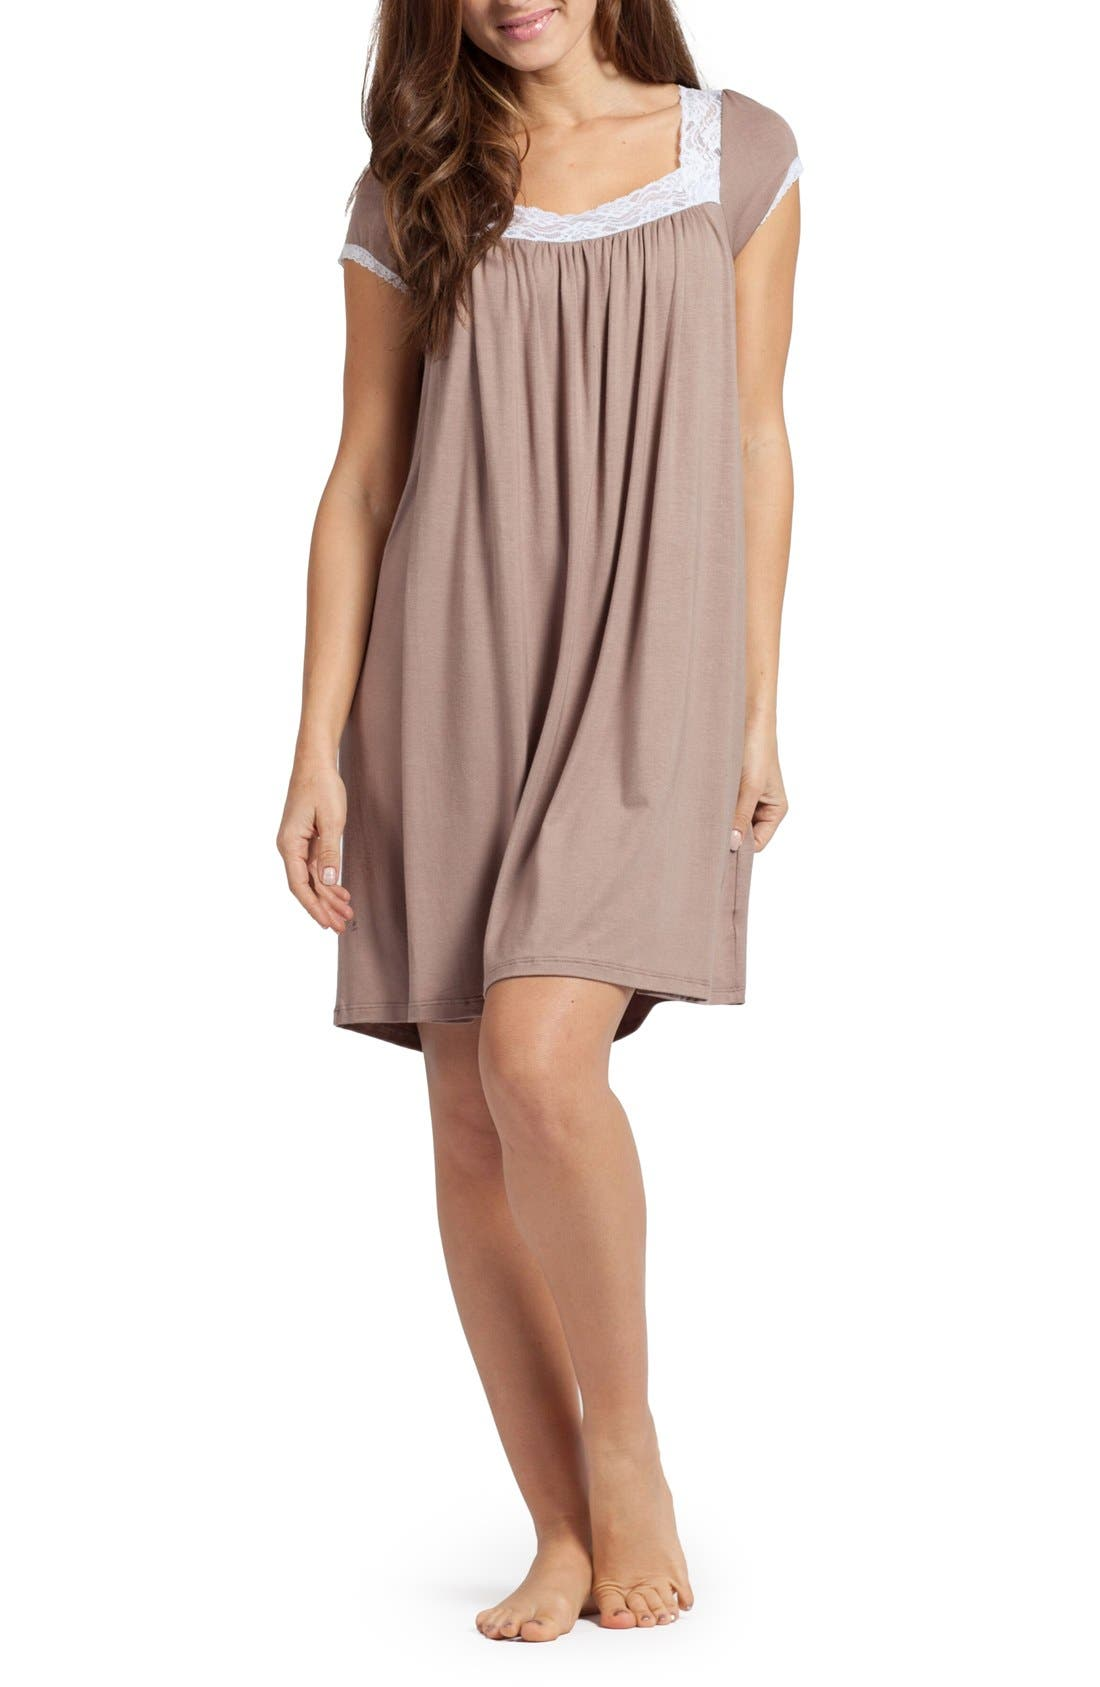 'The Lace' Maternity/Nursing Nightgown,                         Main,                         color, Mocha